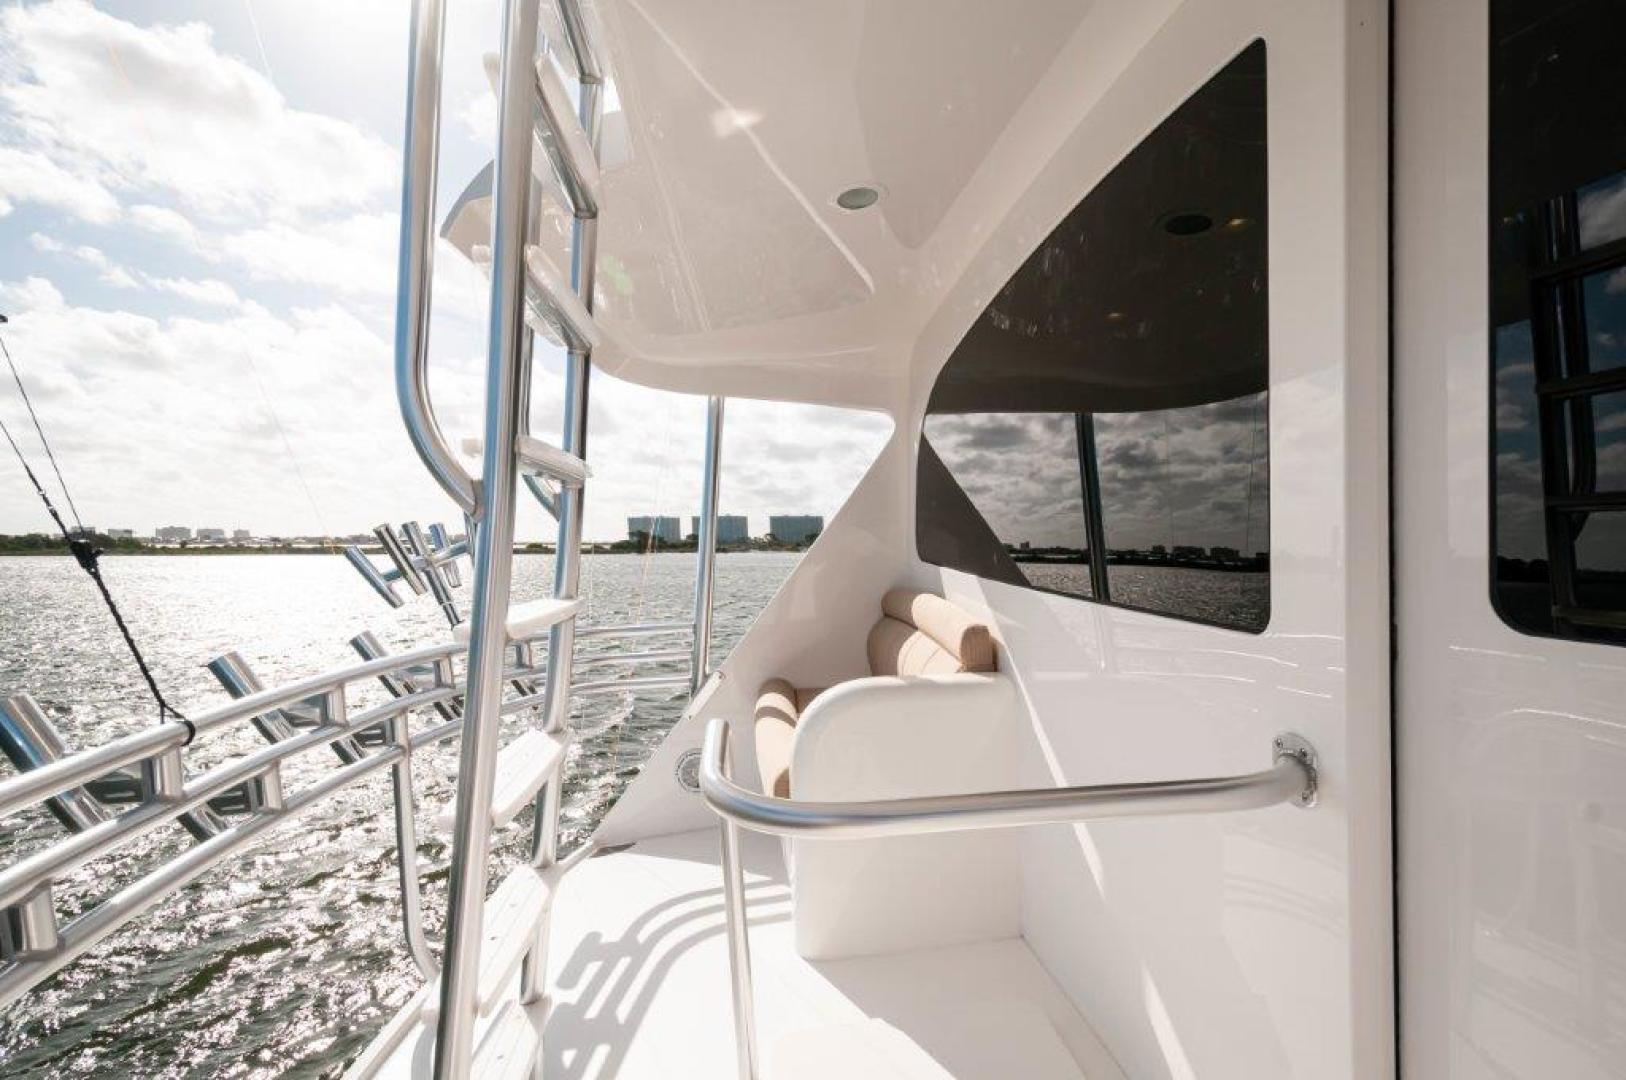 Viking-72 Enclosed Bridge 2017-SHARE E Orange Beach-Alabama-United States-2017 72 EB Viking SHARE-E Aux Helm-1233238 | Thumbnail